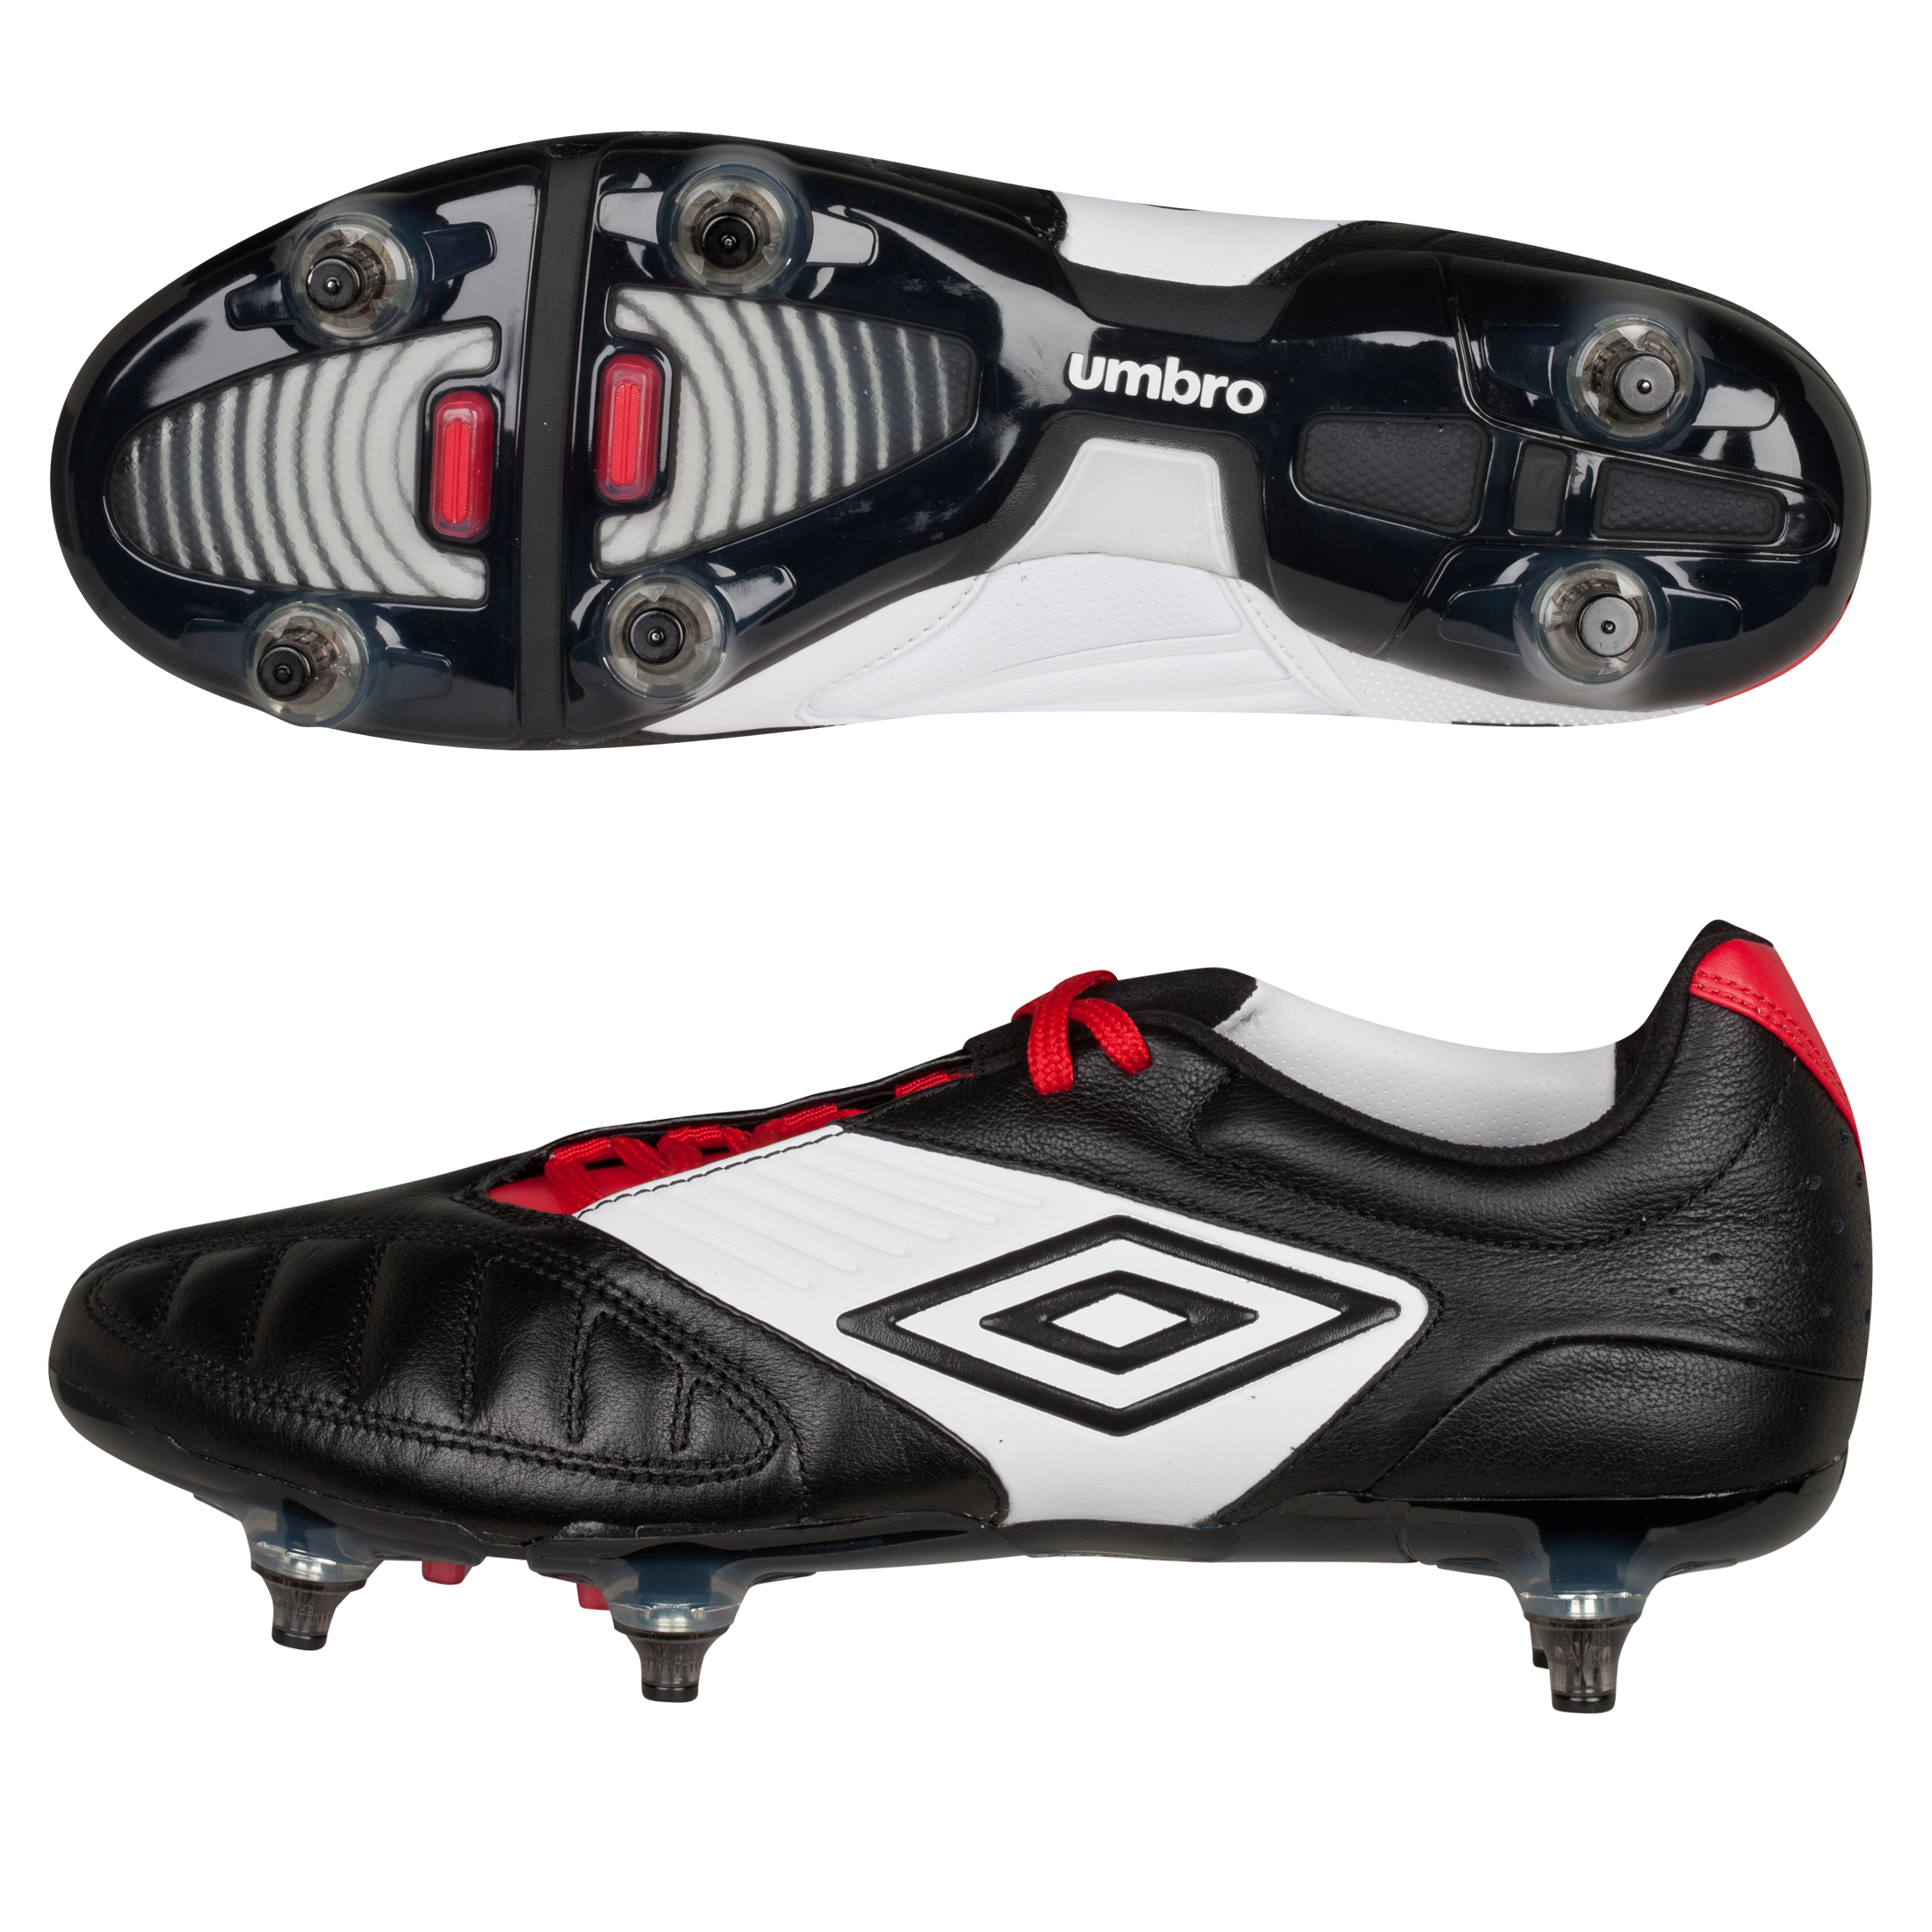 Umbro Geometra Pro Soft Ground Football Boots - Black/White/True Red